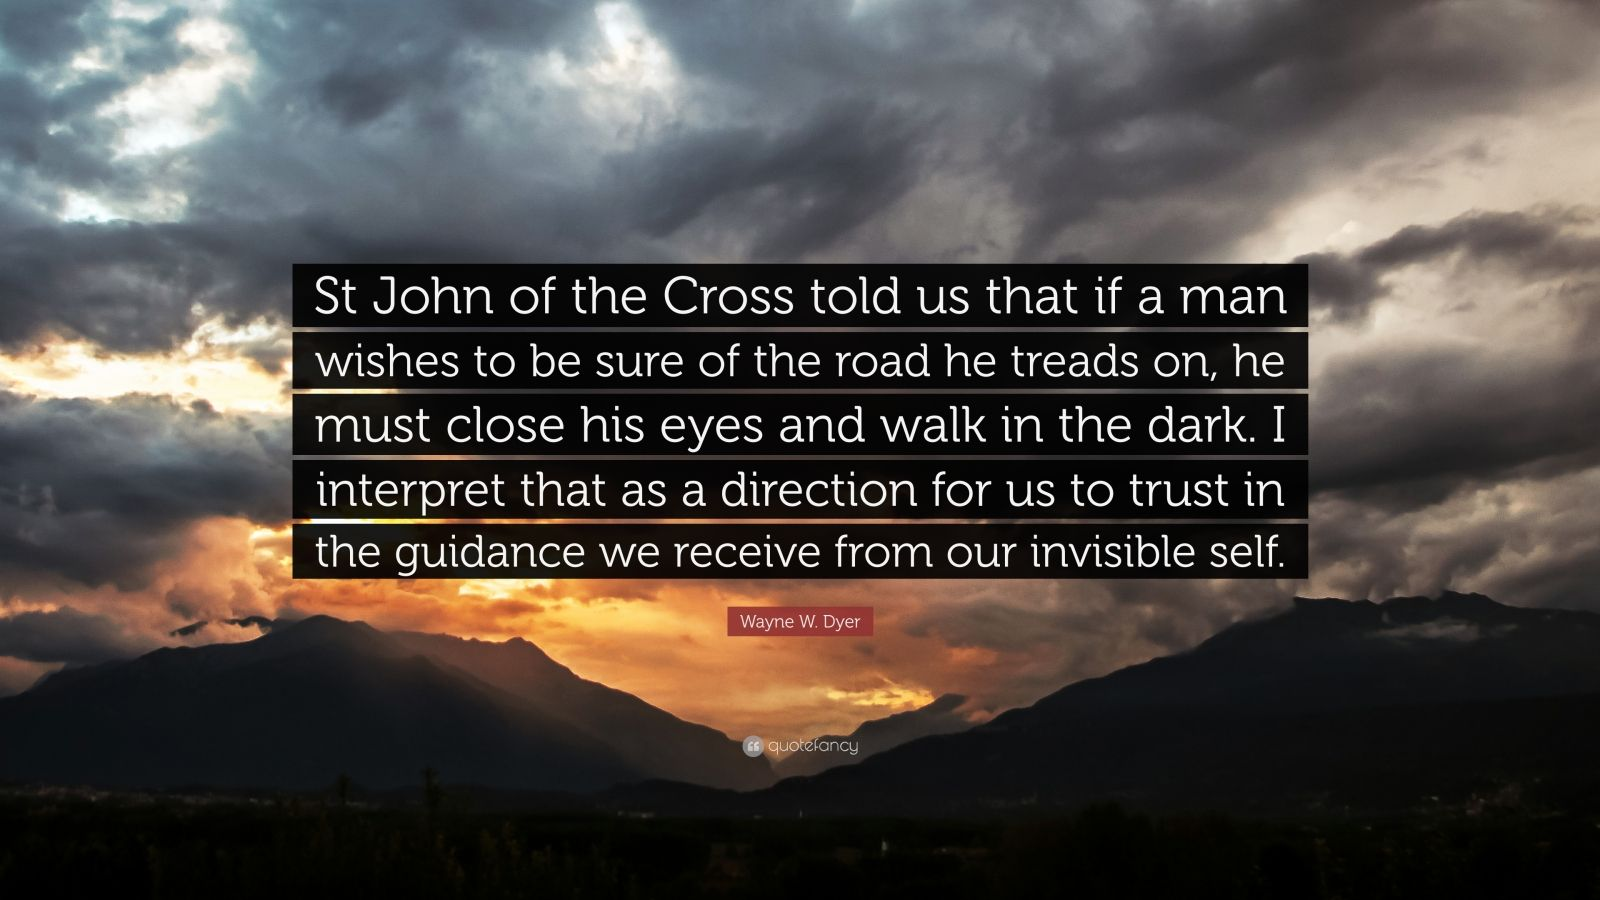 """Wayne W. Dyer Quote: """"St John of the Cross told us that if a man wishes to be sure of the road he treads on, he must close his eyes and walk in the dark. I interpret that as a direction for us to trust in the guidance we receive from our invisible self."""""""